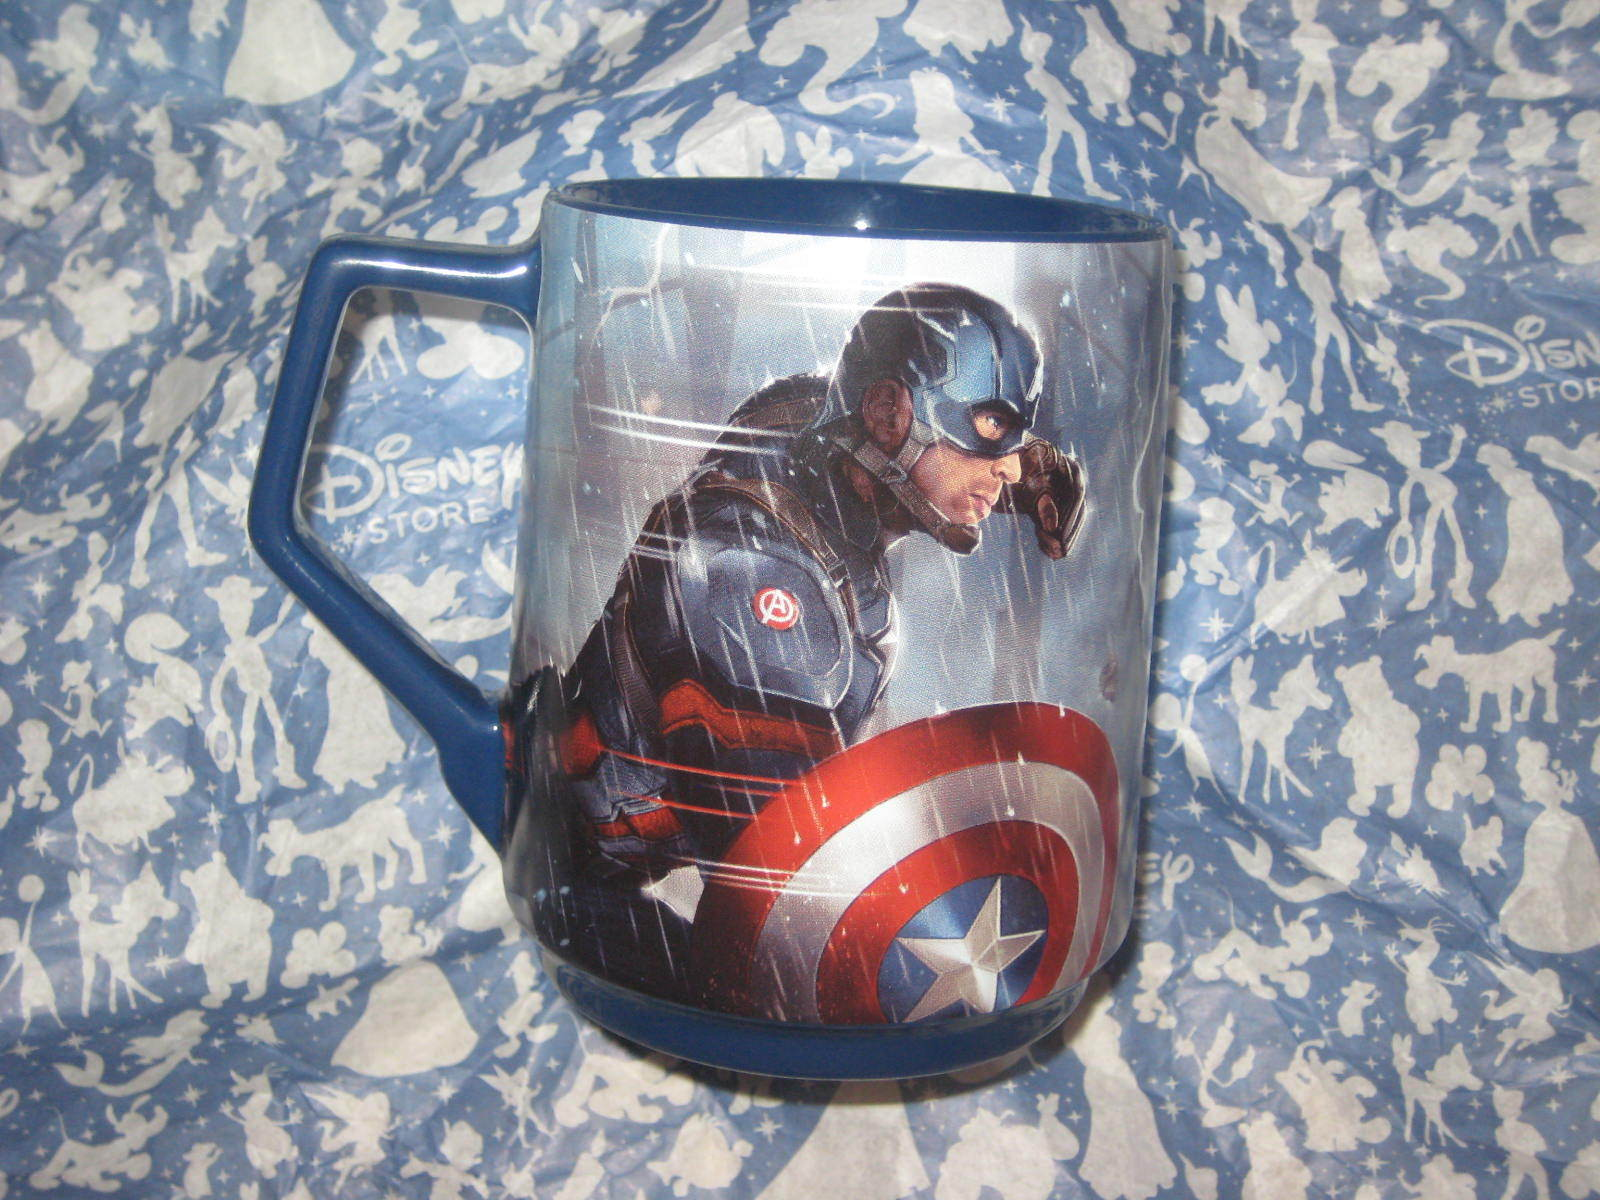 Marvel 50 And Disney Store AmericaIron Similar Items Captain 8n0OPkw